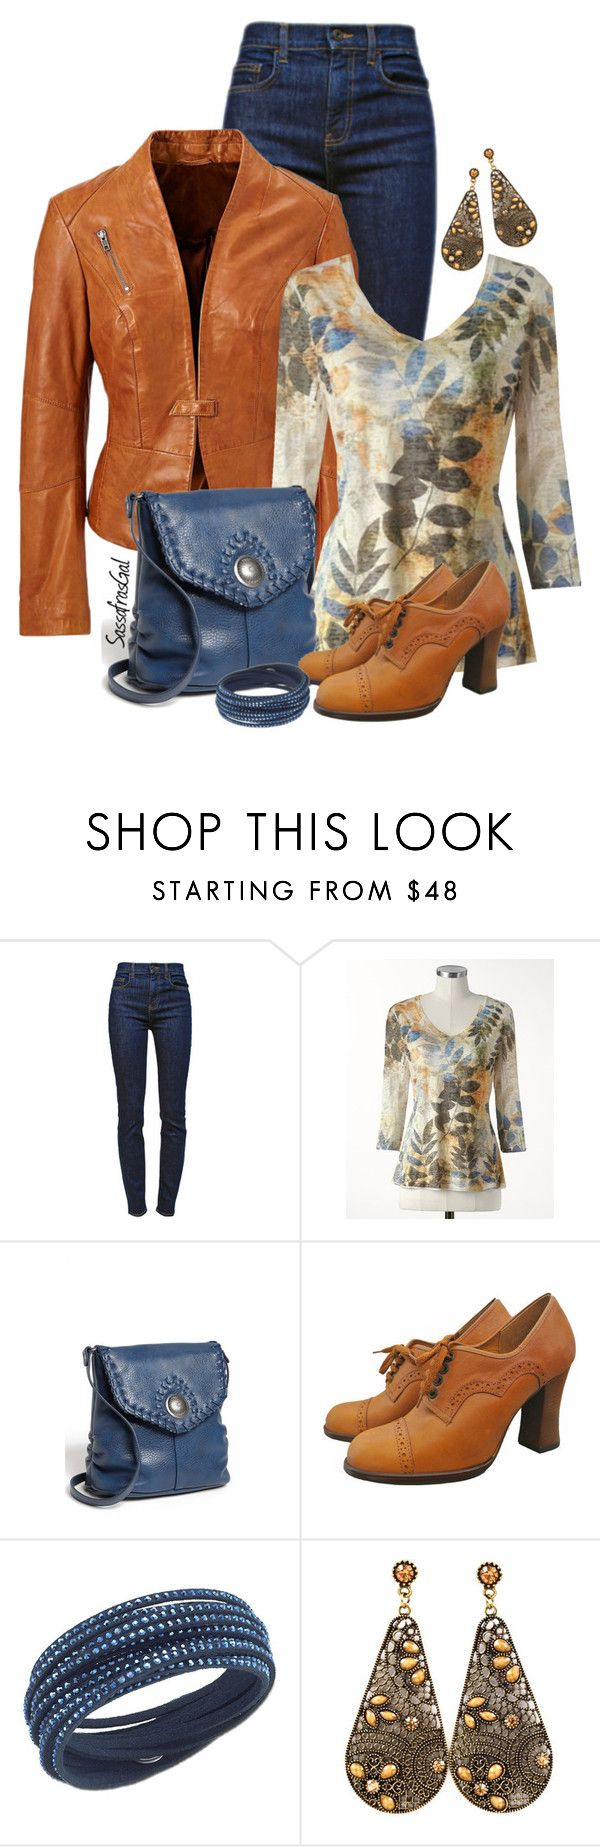 """Camel Jacket"" by sassafrasgal ❤ liked on Polyvore featuring Proenza Schouler, Coldwater Creek, Jessica Simpson and Swarovski"